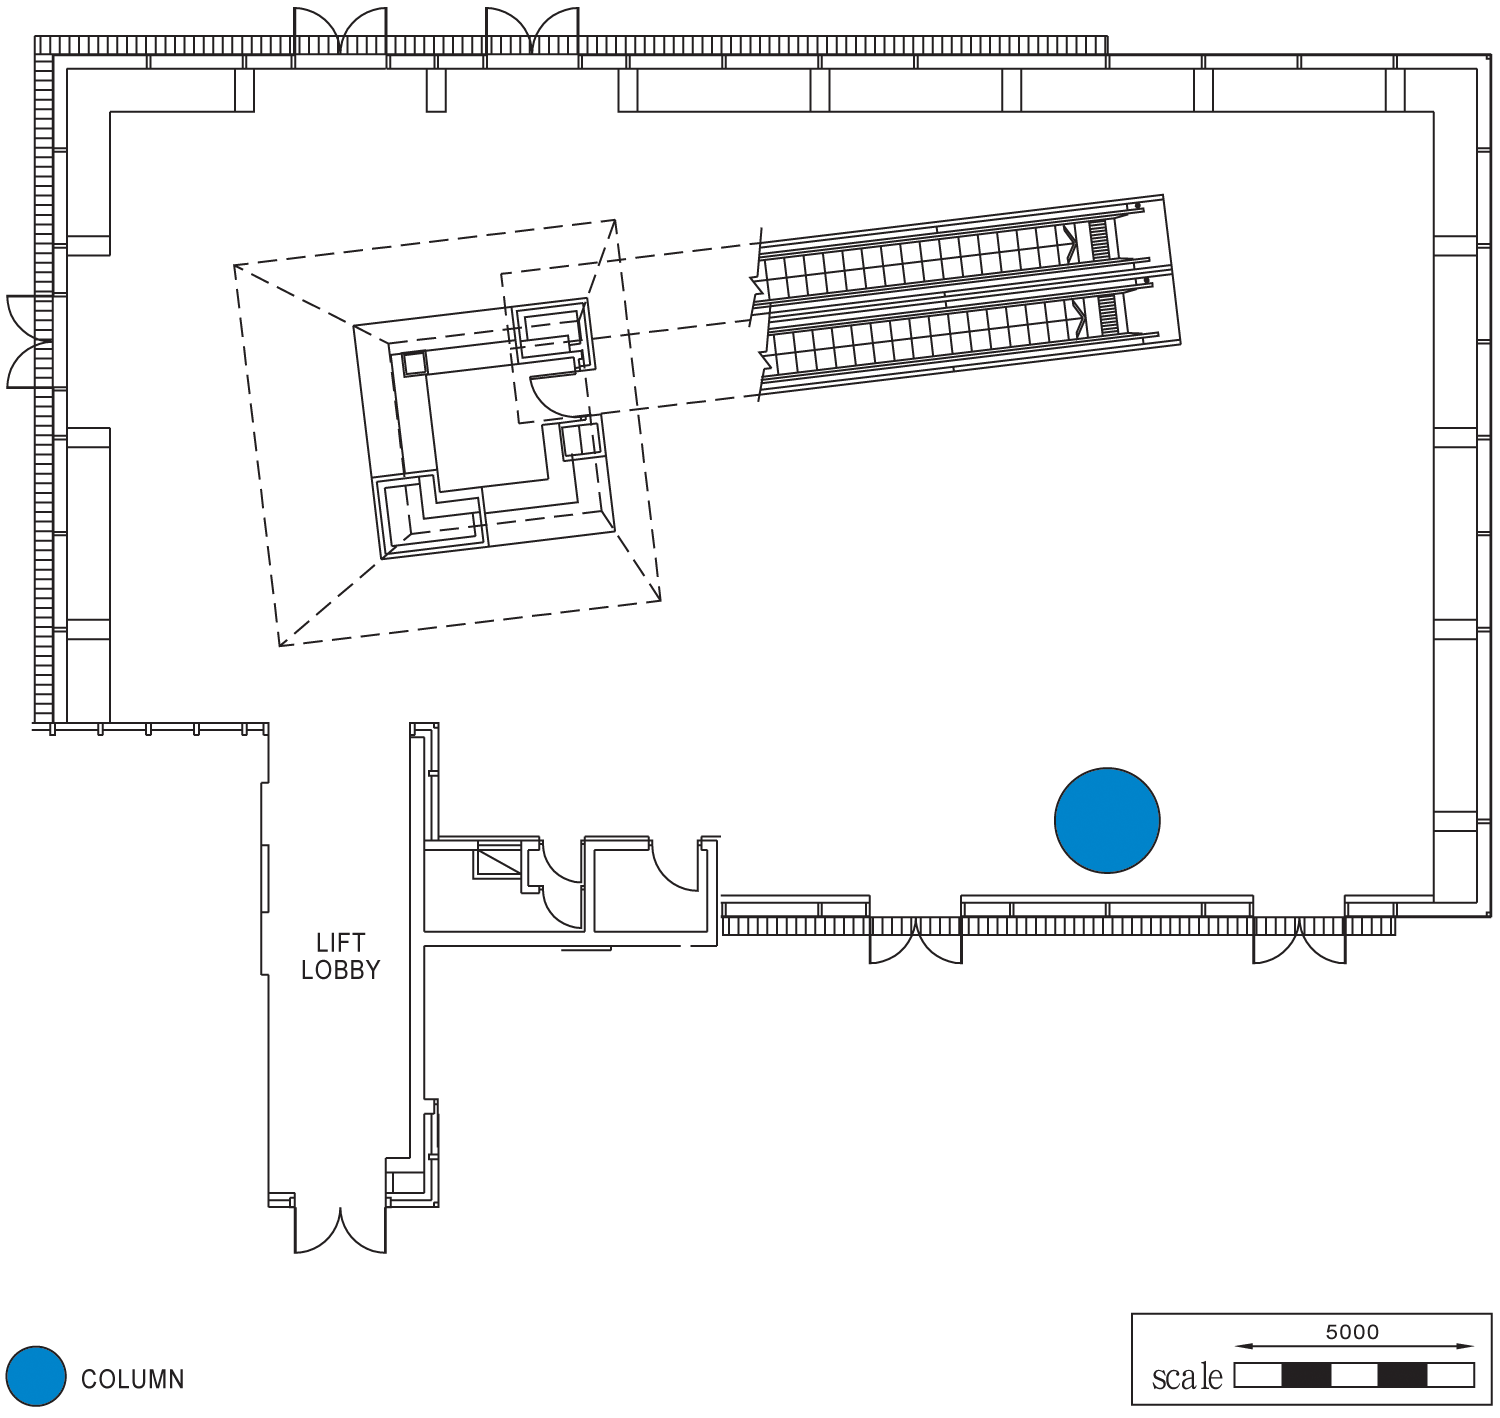 Lobby L1, Core E Floor Plan